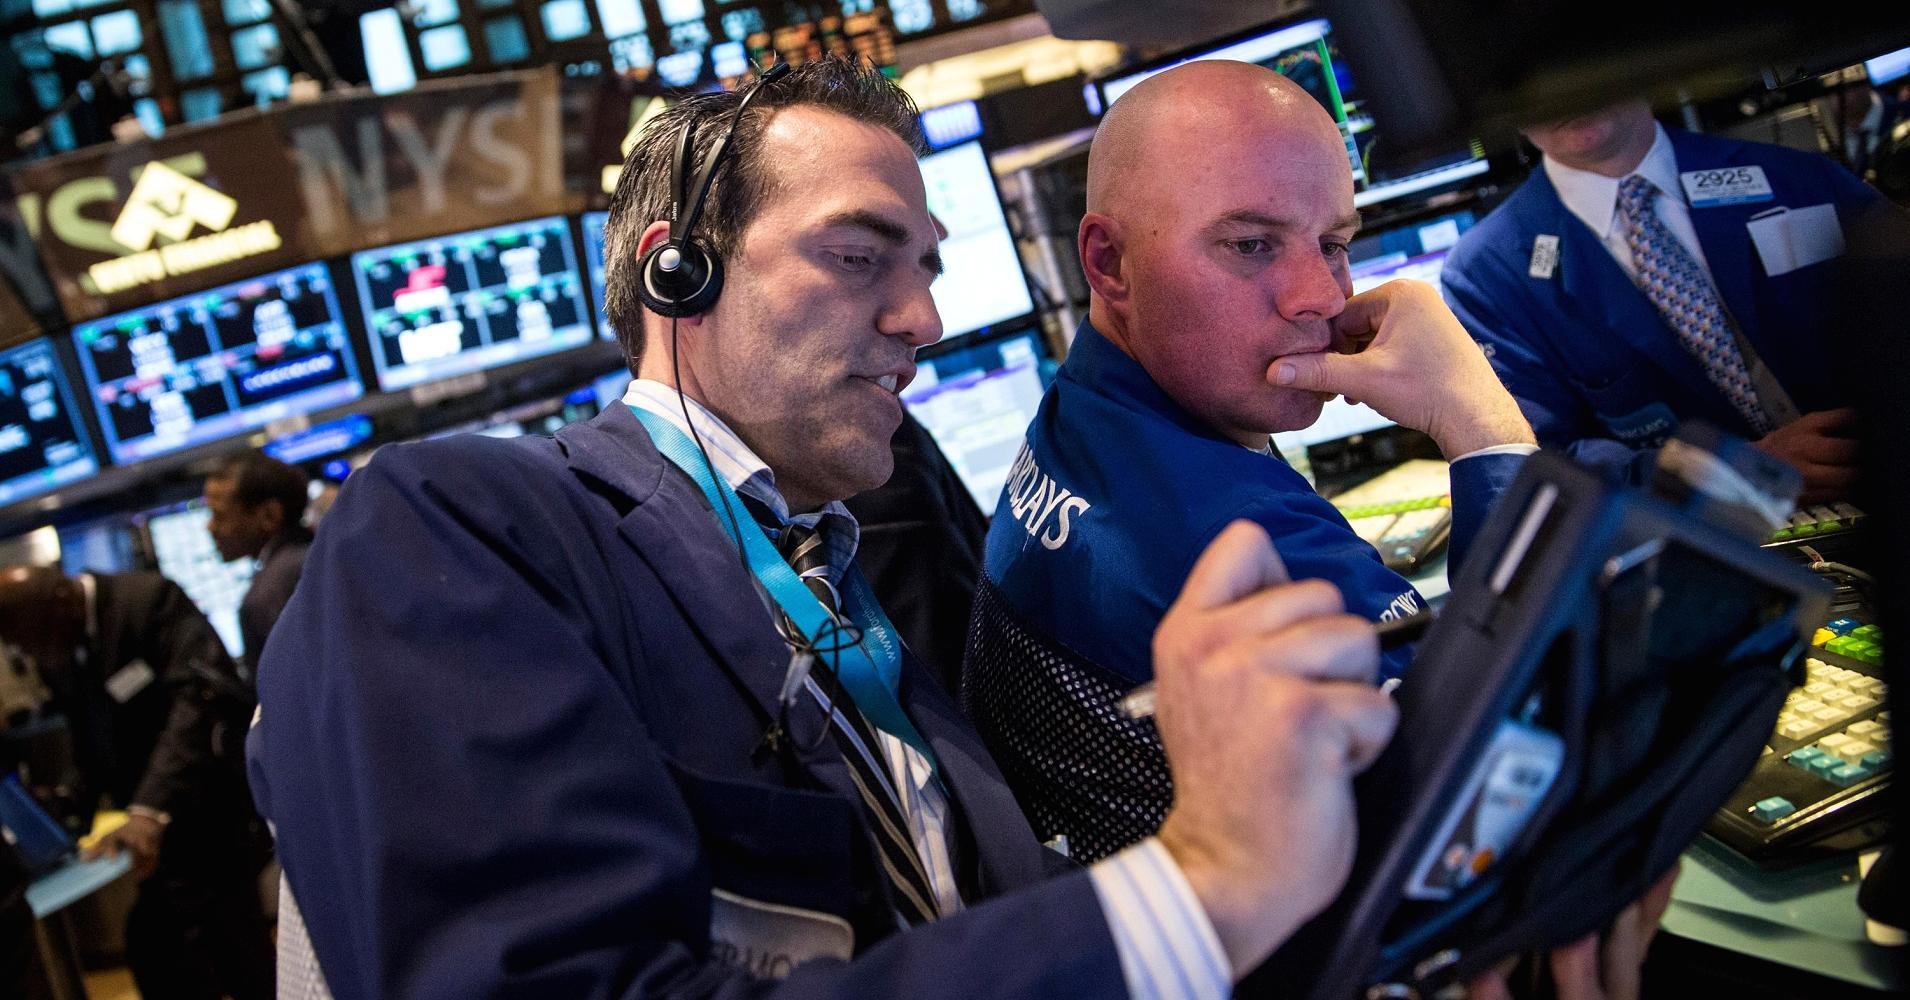 Techs surge on earnings, boosts Nasdaq, S&P 500 to record close